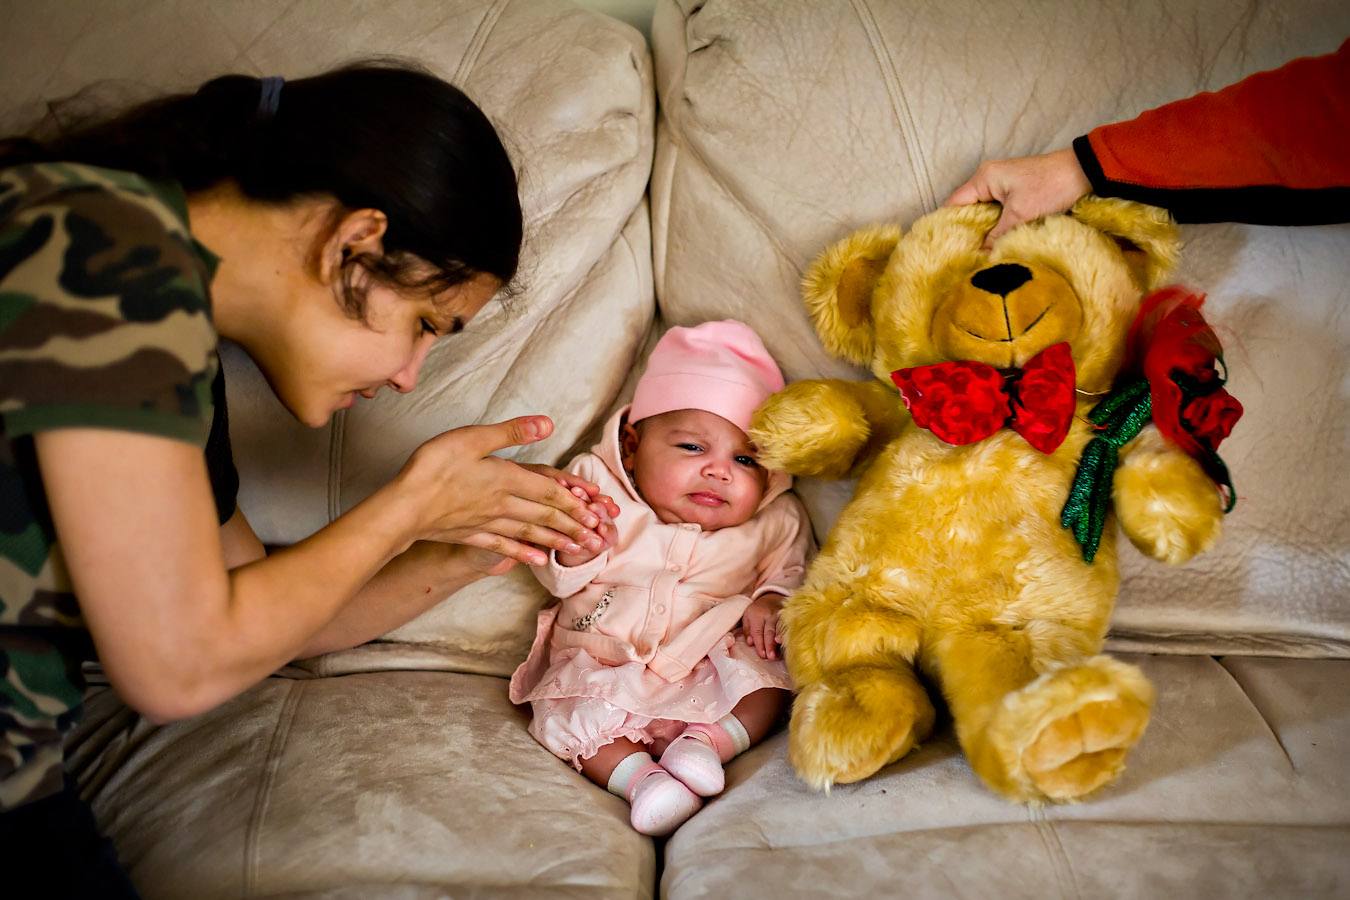 """Jessica feels her daughter's hand while Hector places a stuffed bear next to her on the couch. Jessica says, """"I won't put anybody ahead of her. She goes first now in my life. She's my priority. Yeah I can teach her as a mom, but she can teach me as a kid. She can probably do thing I never could."""""""